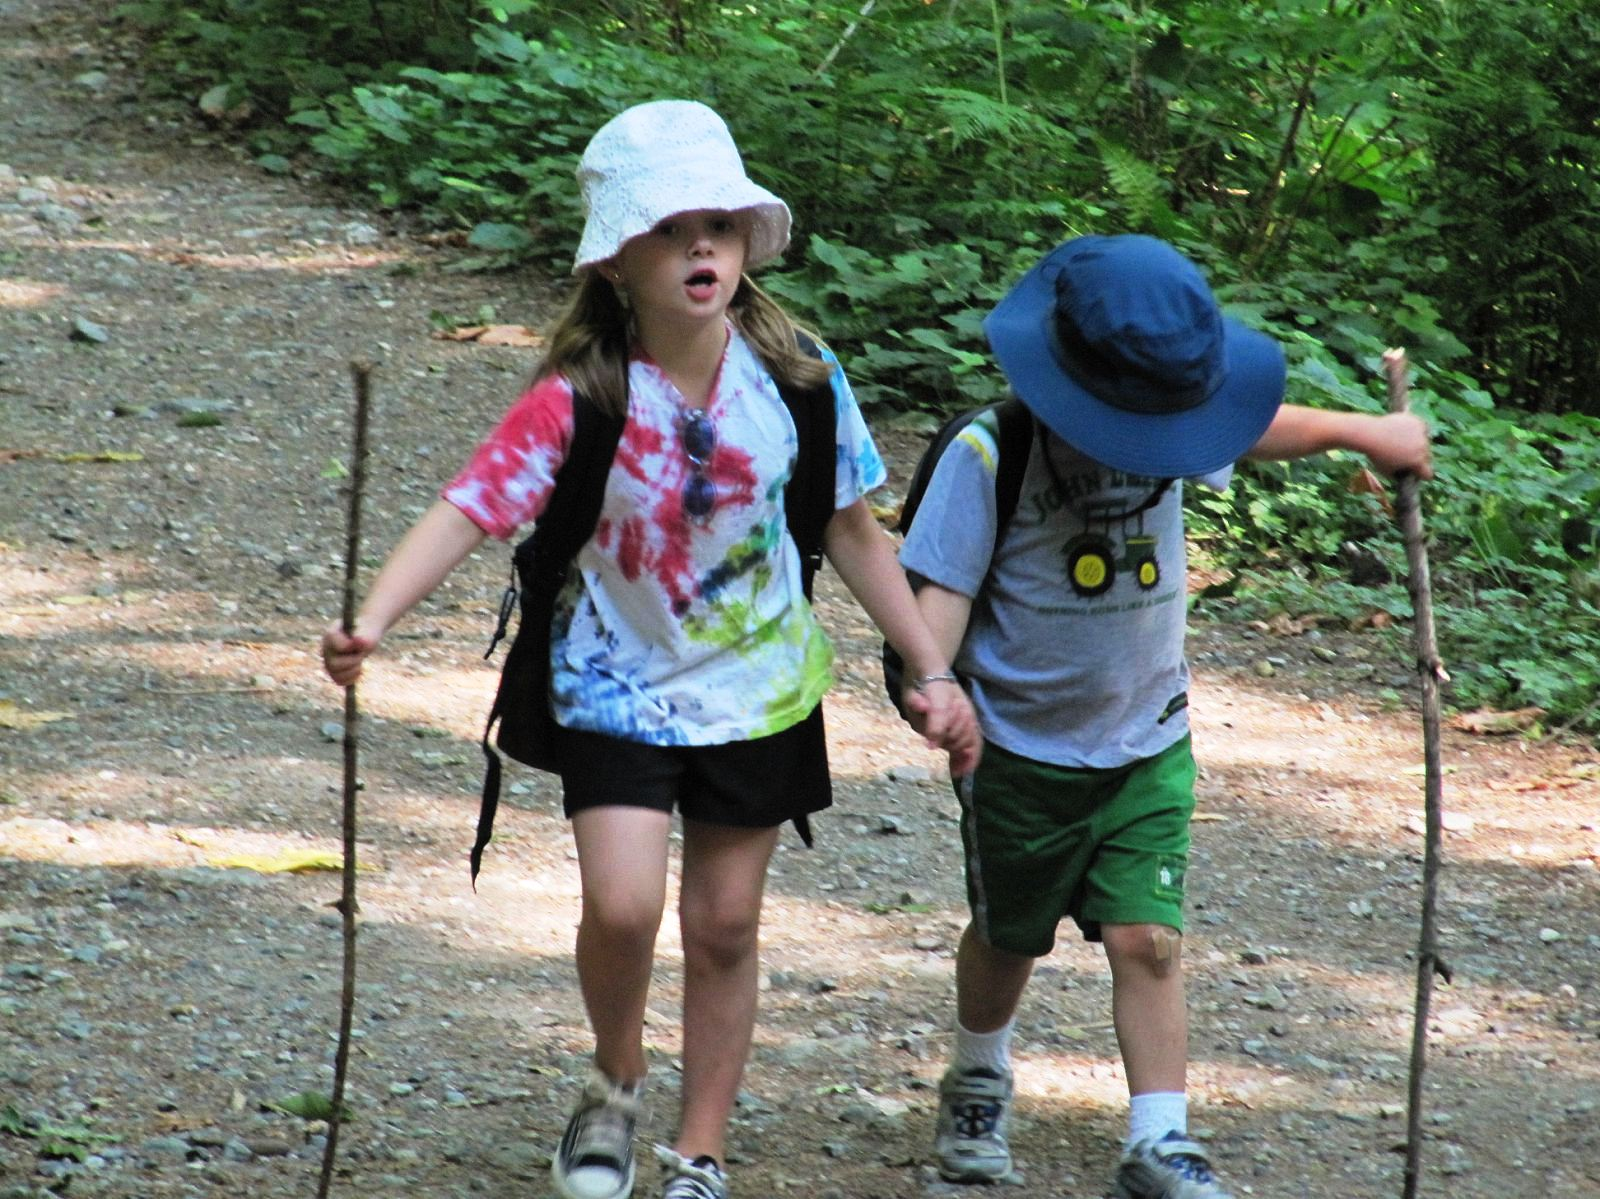 What Do I Need For A Hike With Little Kids